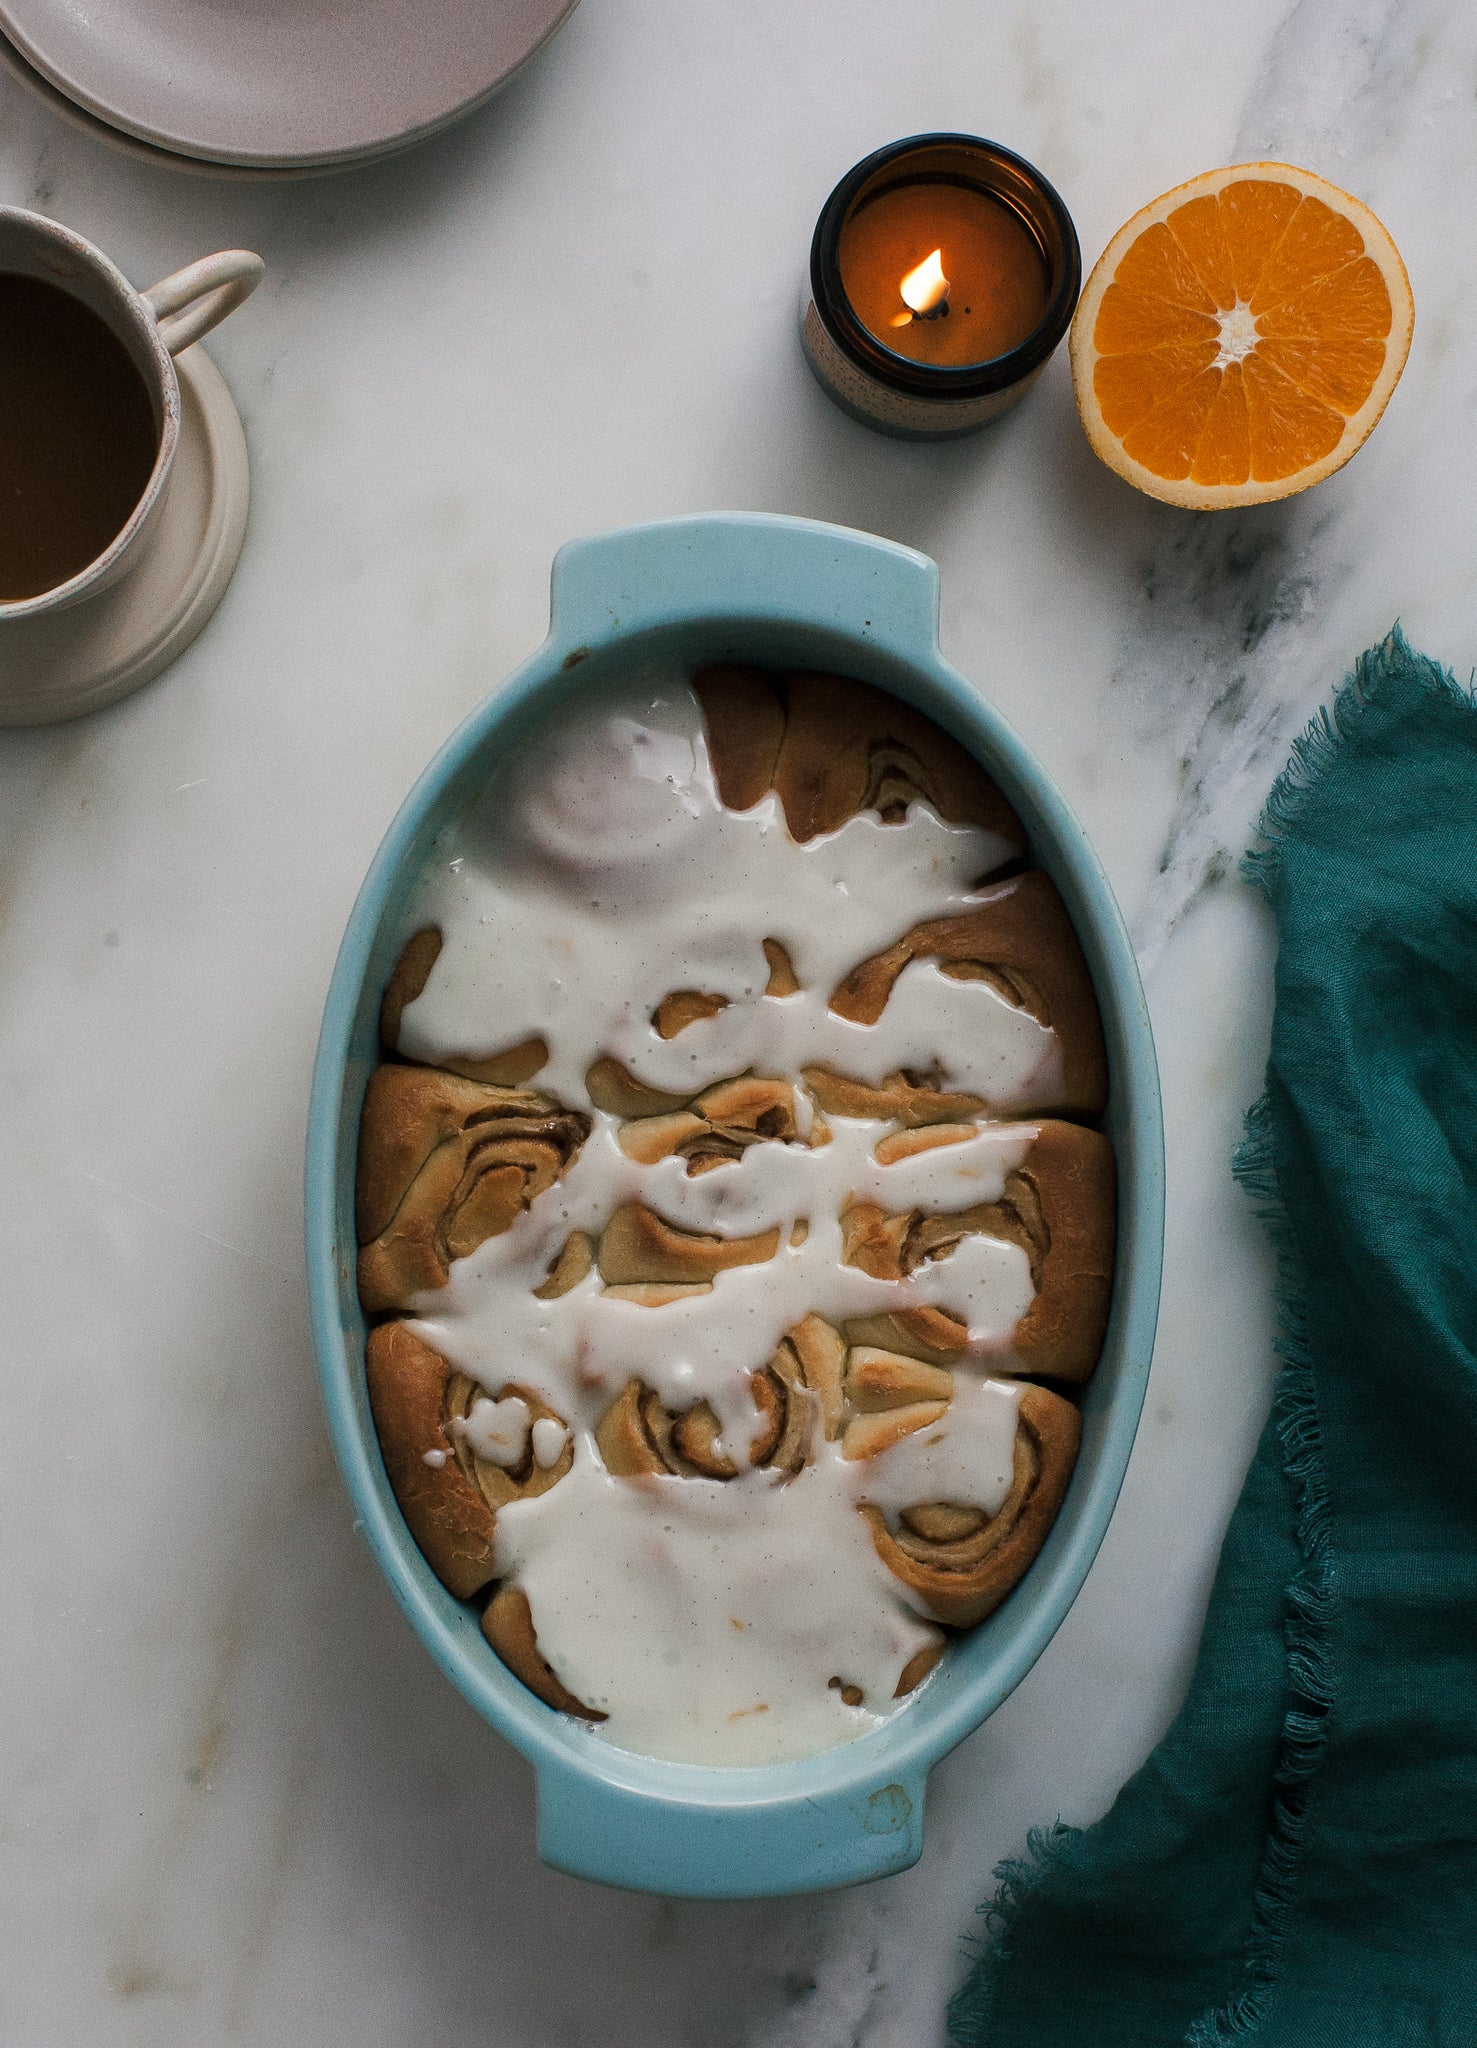 SCENT-INSPIRED RECIPES: ORANGE CARDAMOM ROLLS BY A COZY KITCHEN